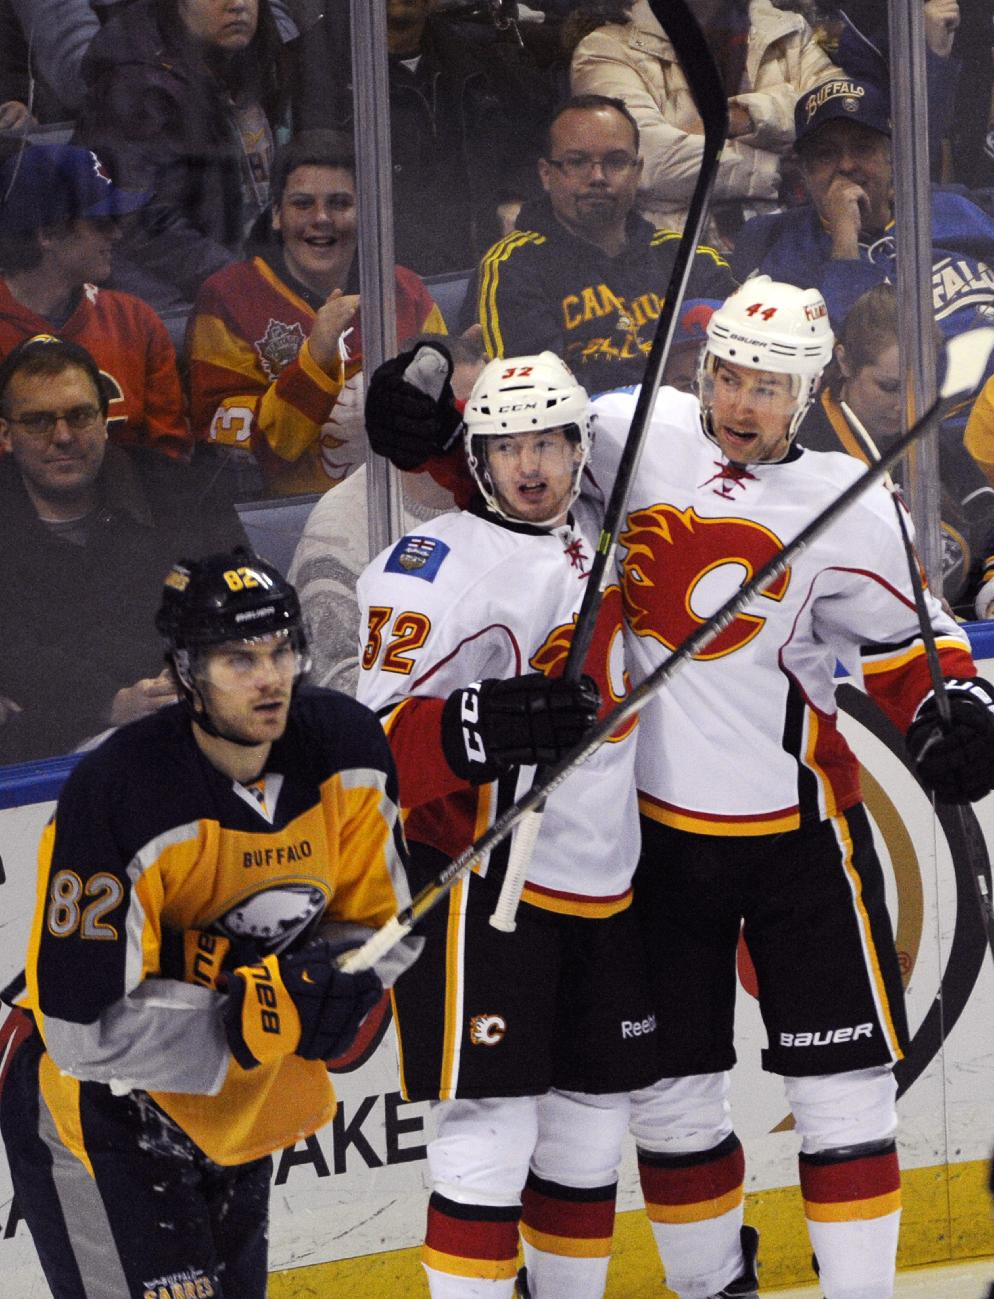 Buffalo Sabres' Marcus Foligno (82) reacts after a goal by Calgary Flames' Paul Byron (32) as Byron celebrates with Chris Butler (44) during the third period of an NHL hockey game in Buffalo, N.Y., Saturday Dec. 14, 2013. Calgary won in overtime 2-1